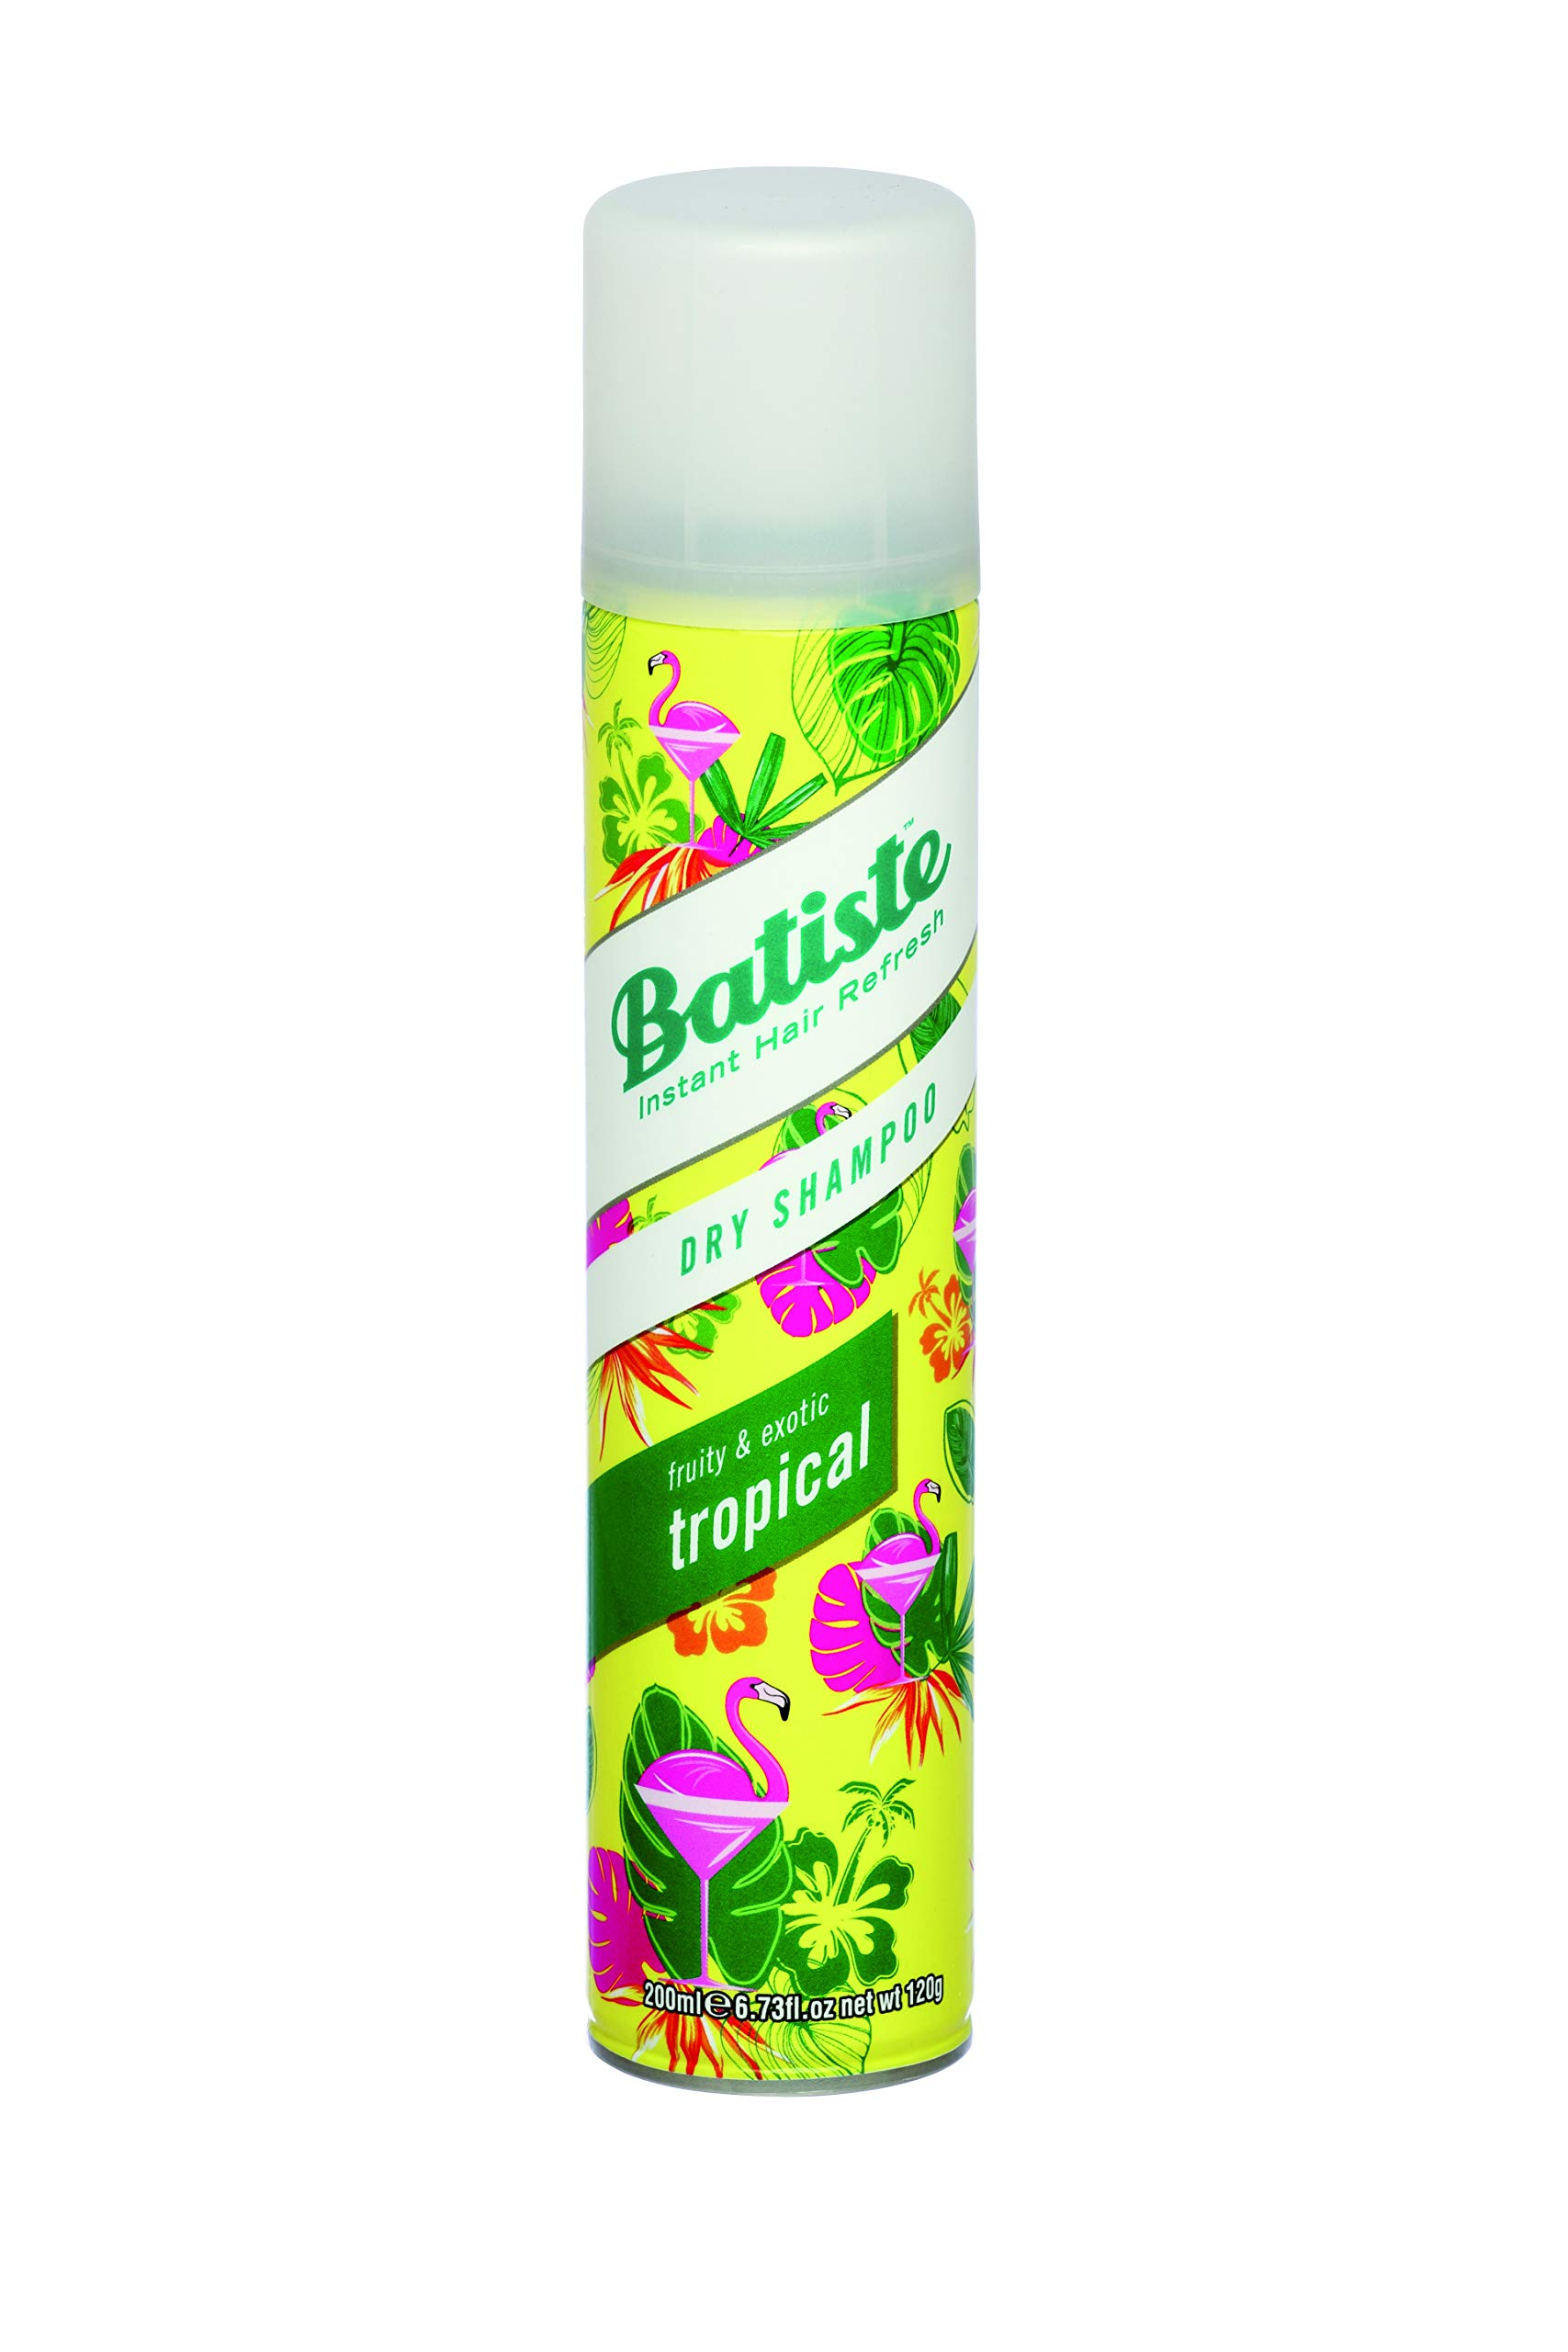 Batiste Champú en Seco Tropical - 200 ml product image